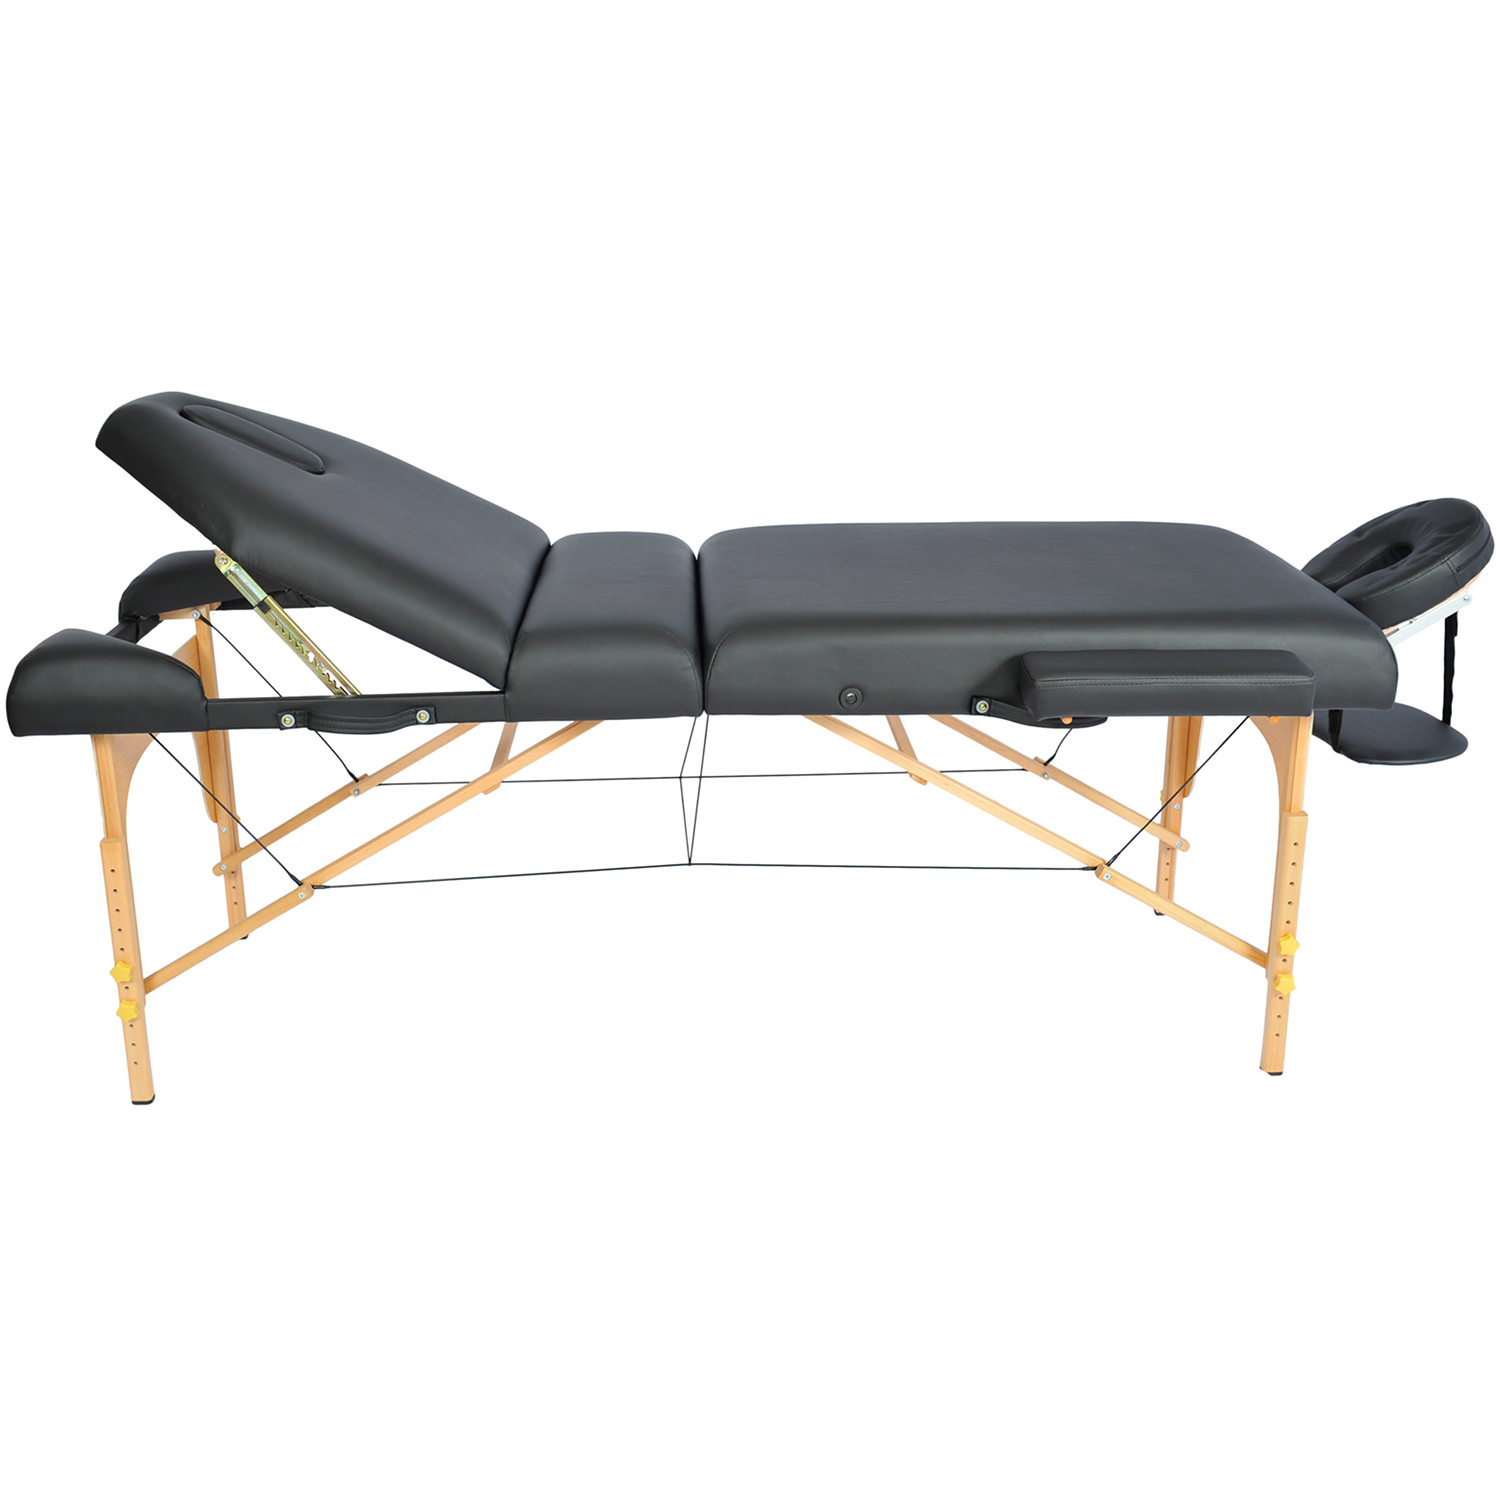 Professional portable 4 foam folding adjustble back massage table w face cradle ebay - How much is a massage table ...